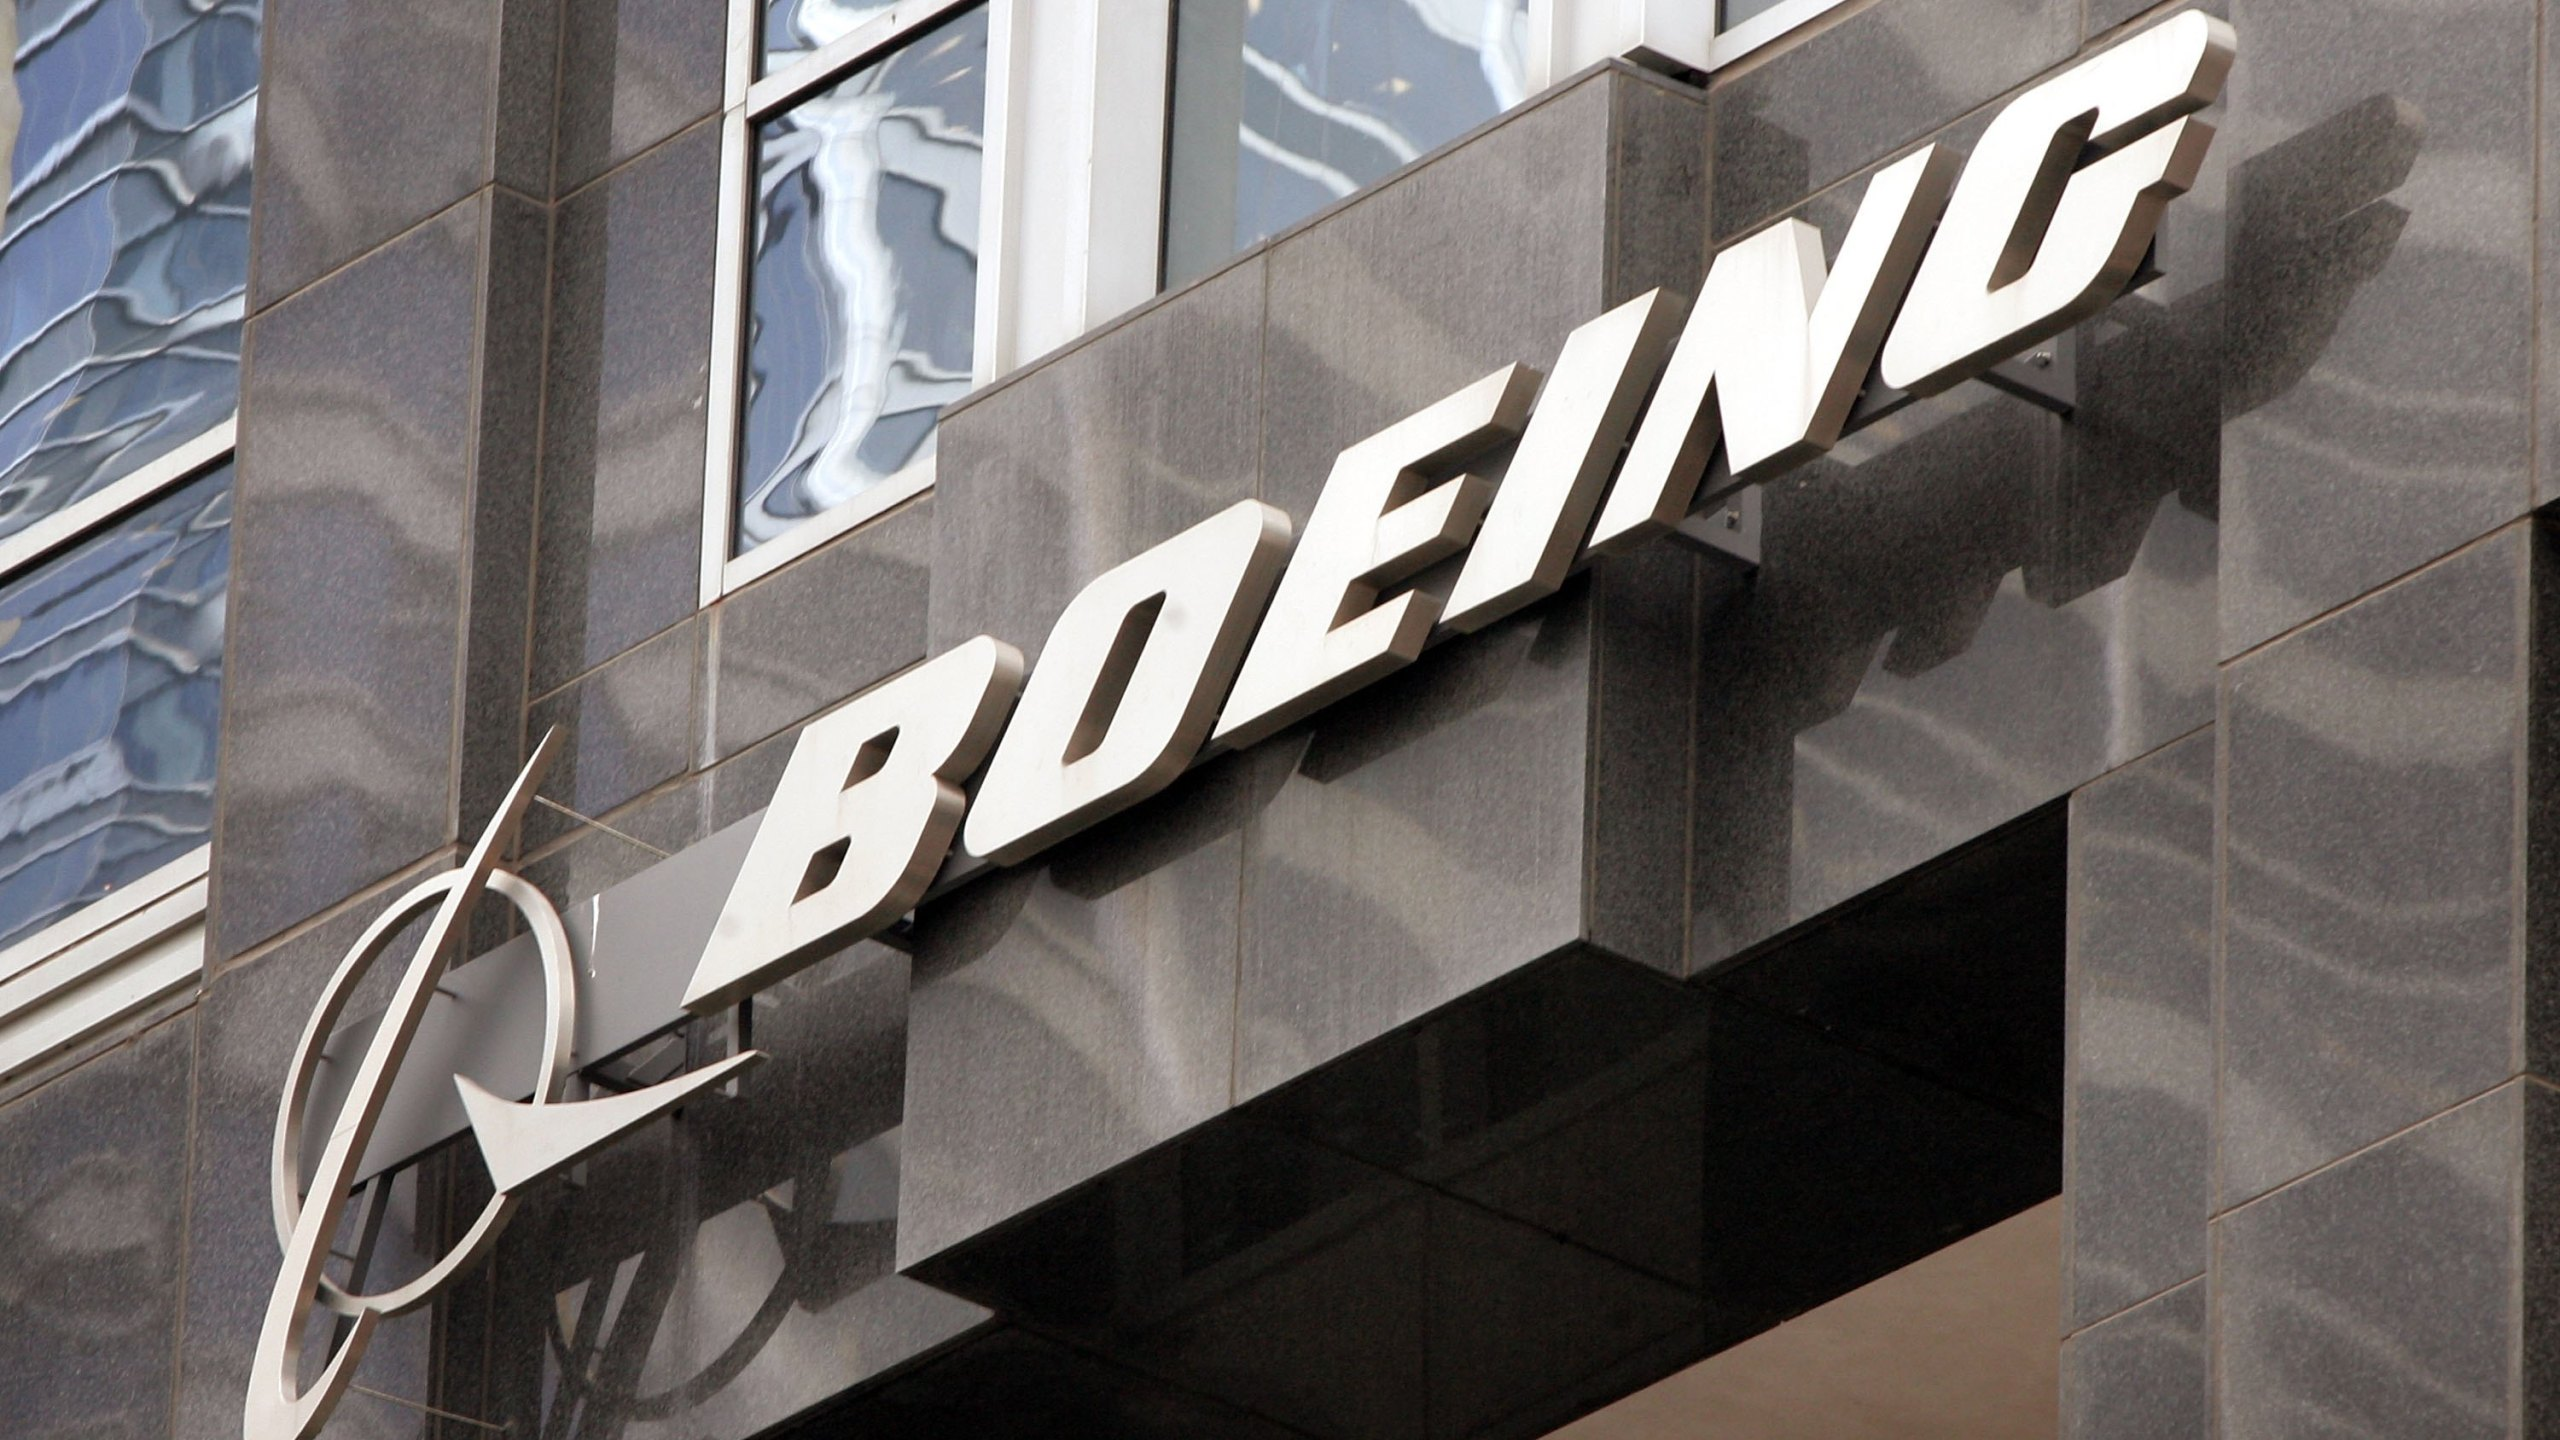 The Boeing logo hangs on the corporate world headquarters building of Boeing November 28, 2006 in Chicago, Illinois. (Scott Olson/Getty Images)